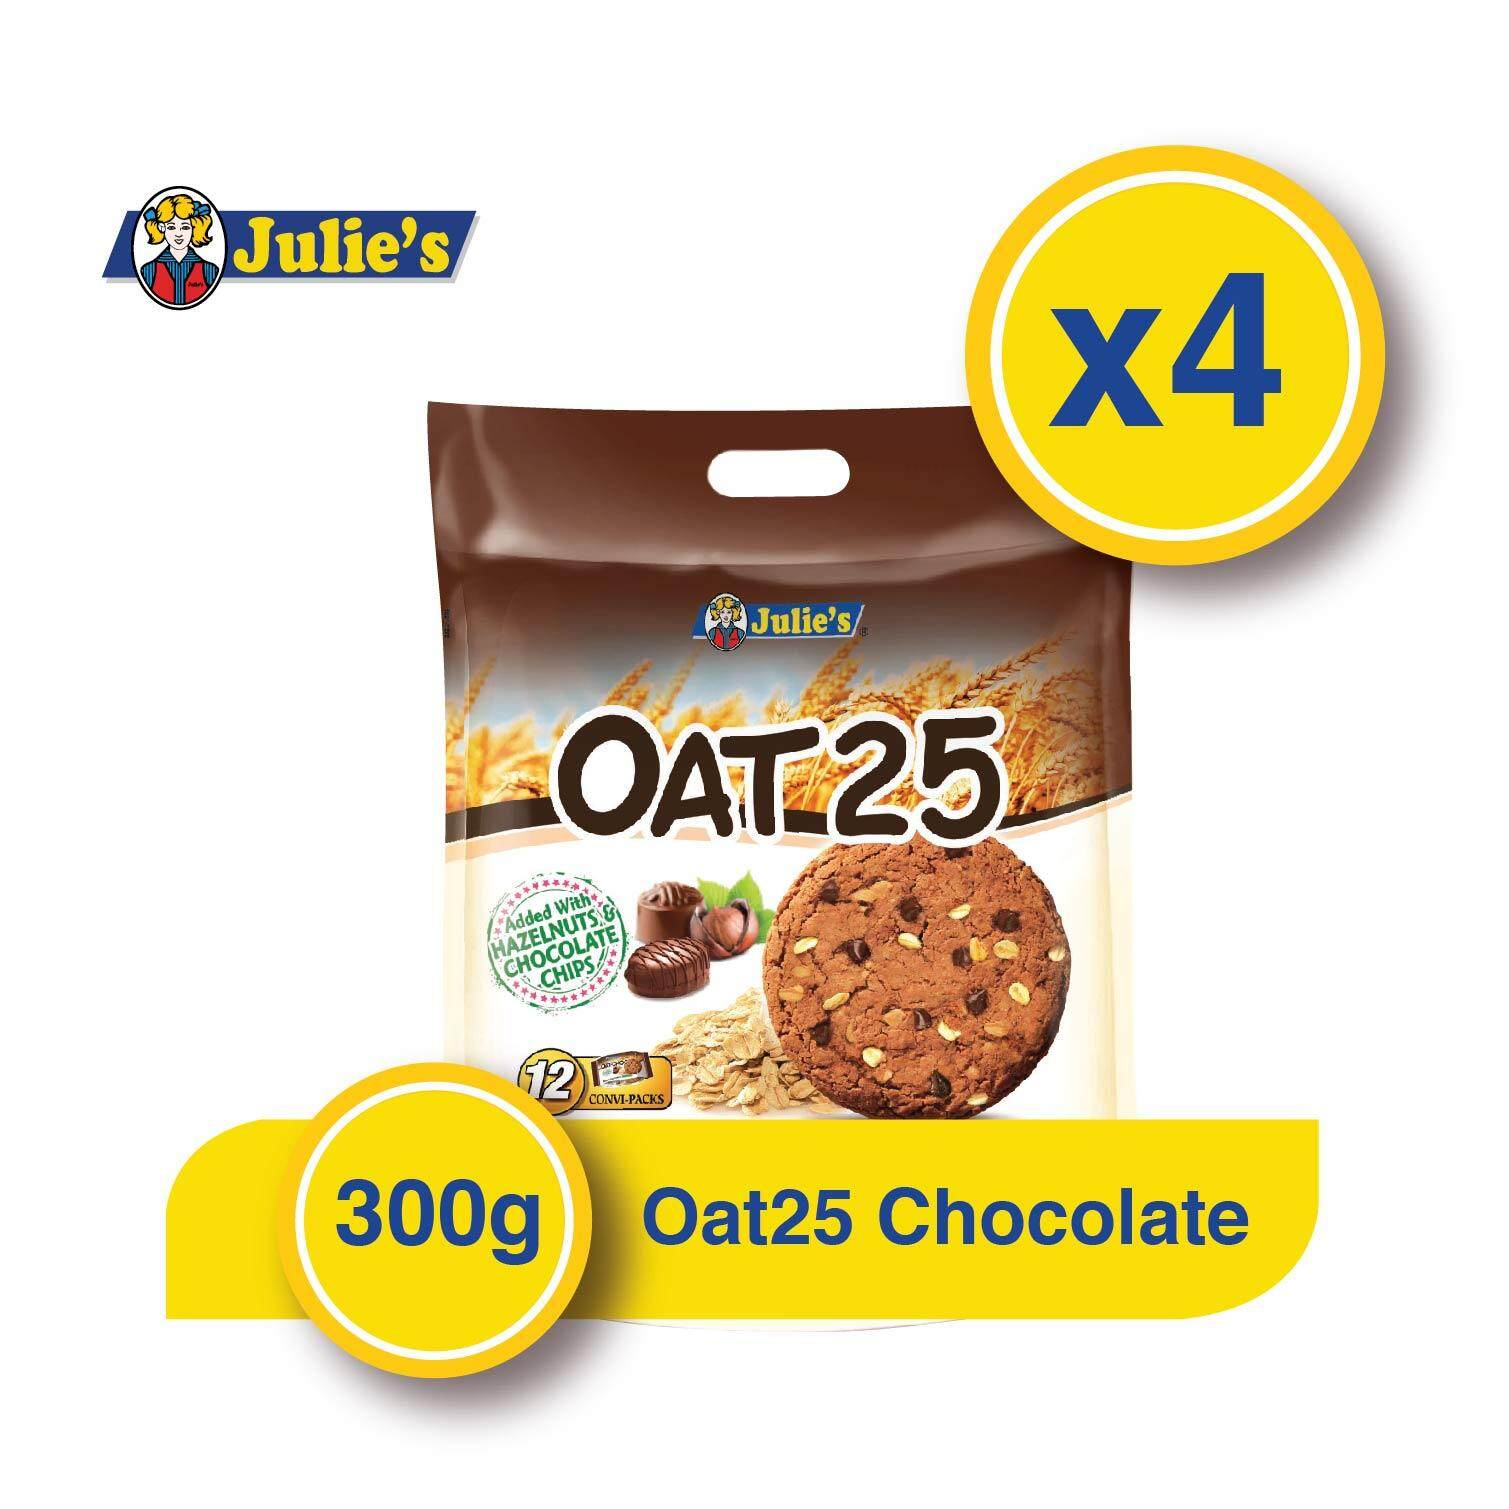 Julie's Oat25 Chocolate Biscuit x 4 packs + Free 5 pack Convi pack Biscuit